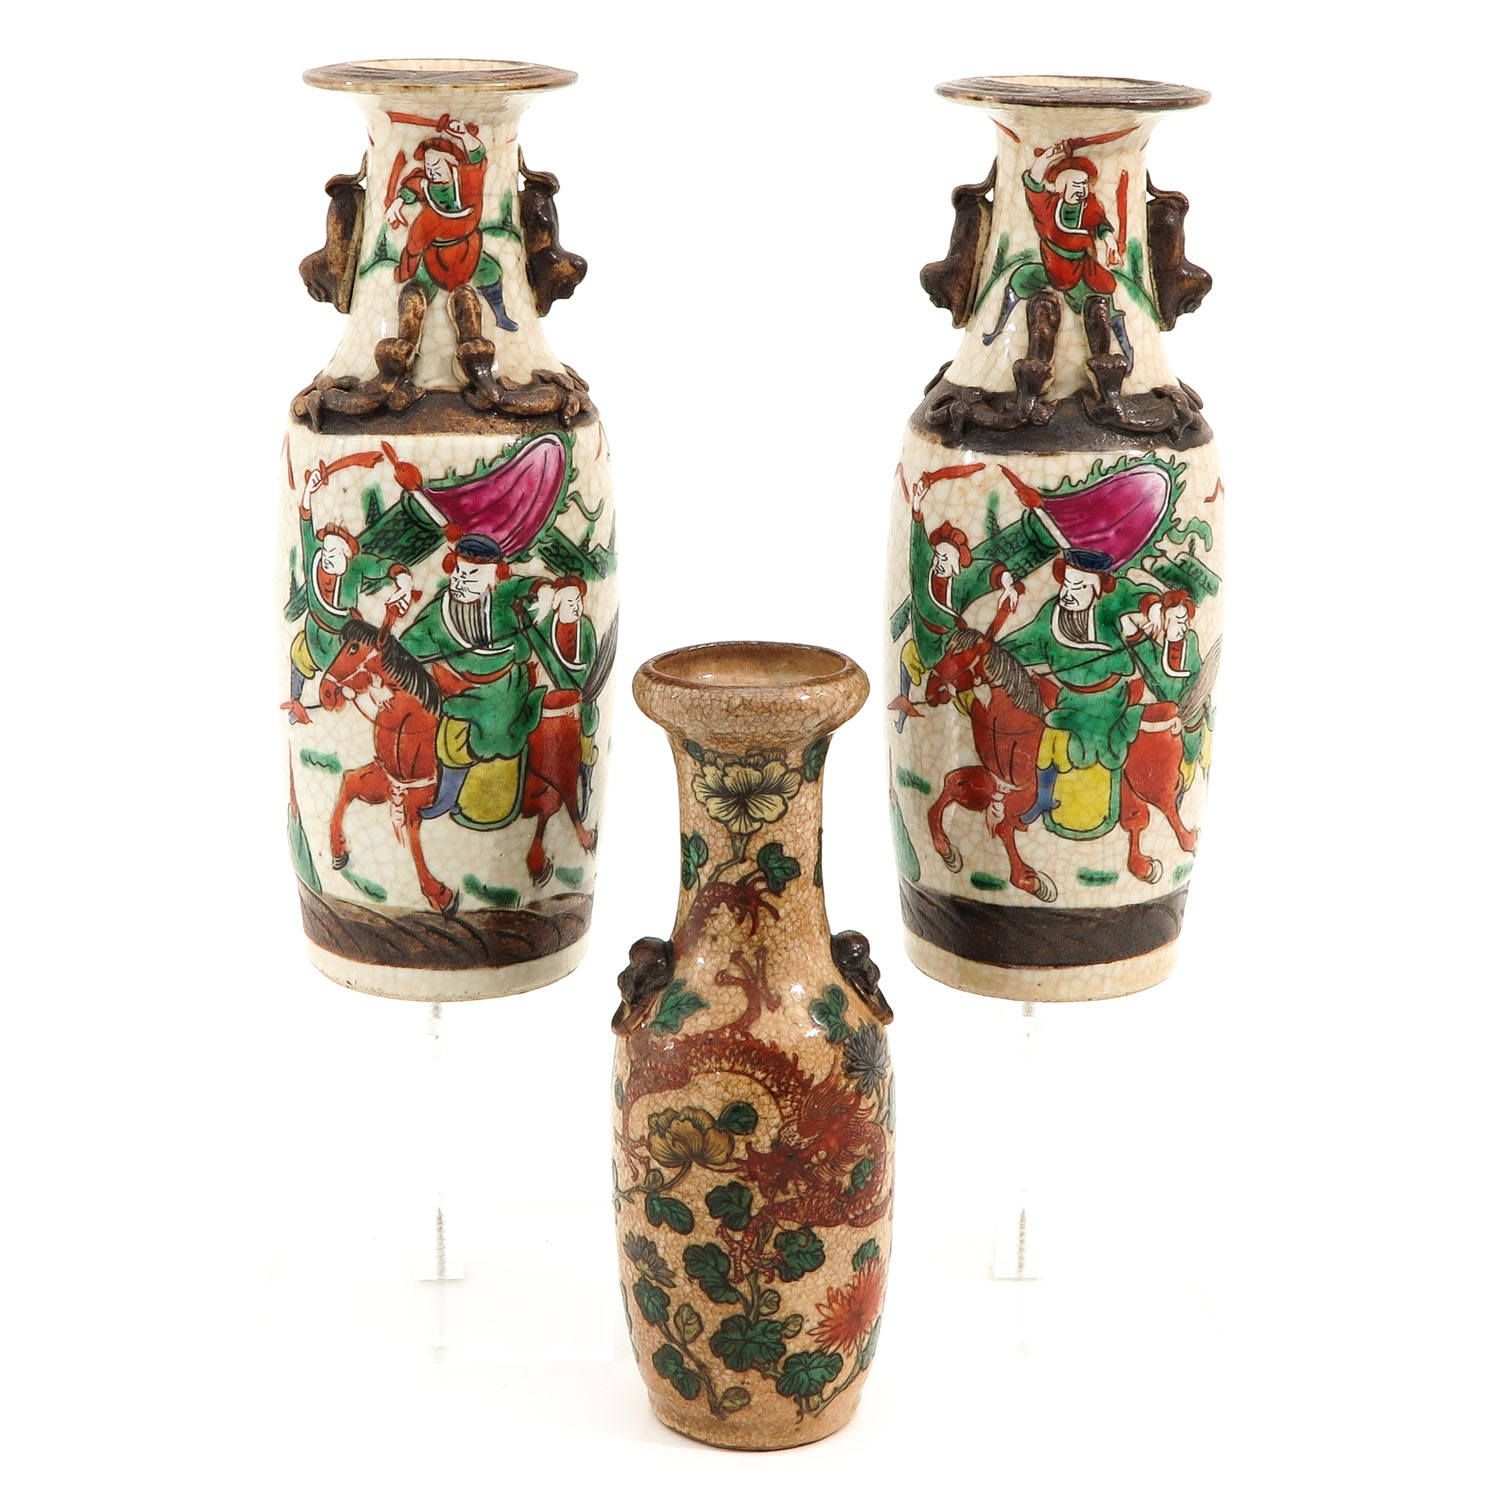 A Collection of 3 Nanking Vases